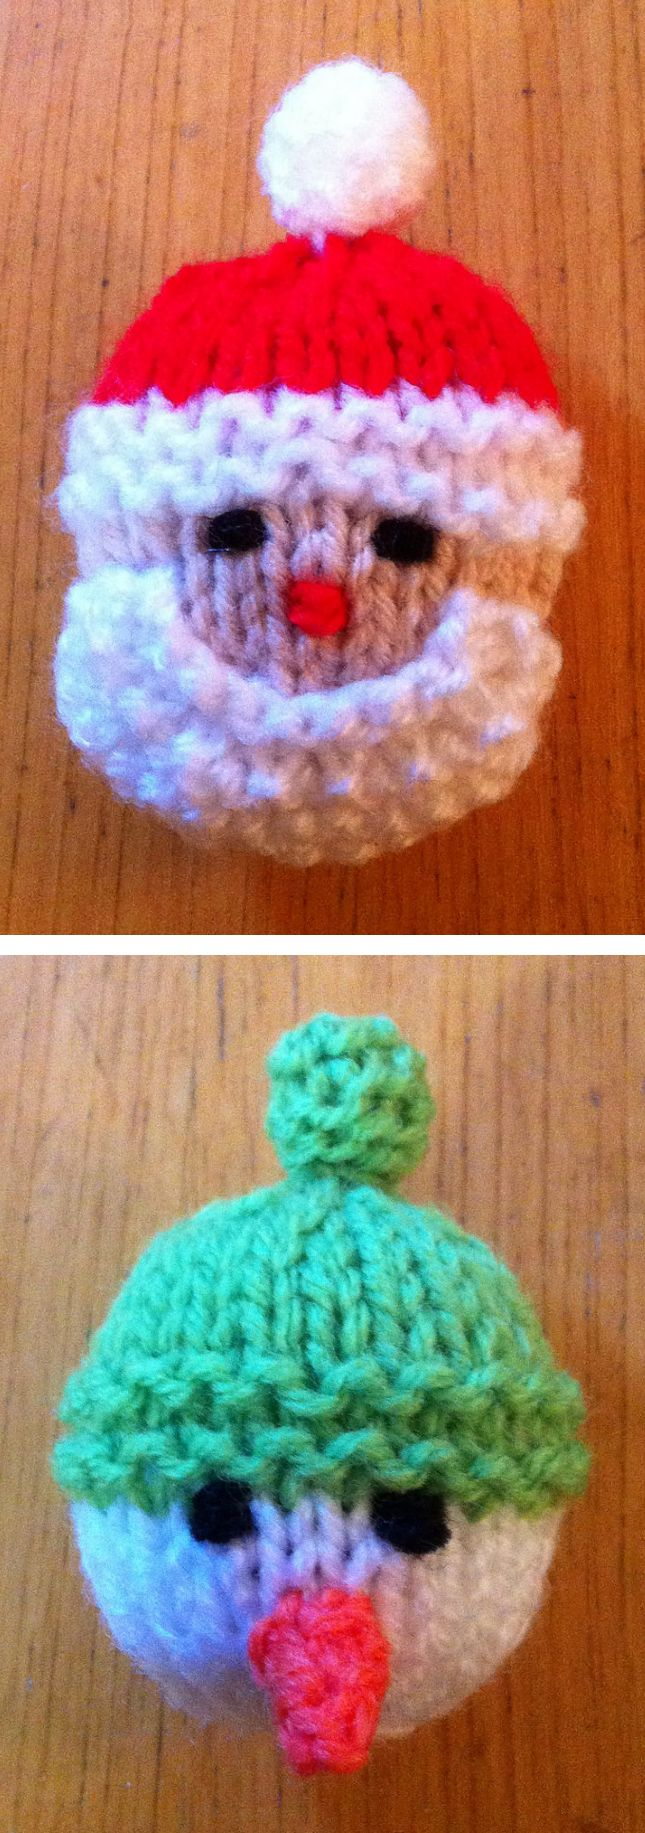 Free Knitting Pattern for Santa and Snowman Brooches - Brooches measure about 5cm x 5cm. Ideal for parties or to sell at holiday bazaars. Quick and easy to knit. Designed by Bizzle McQuizzle